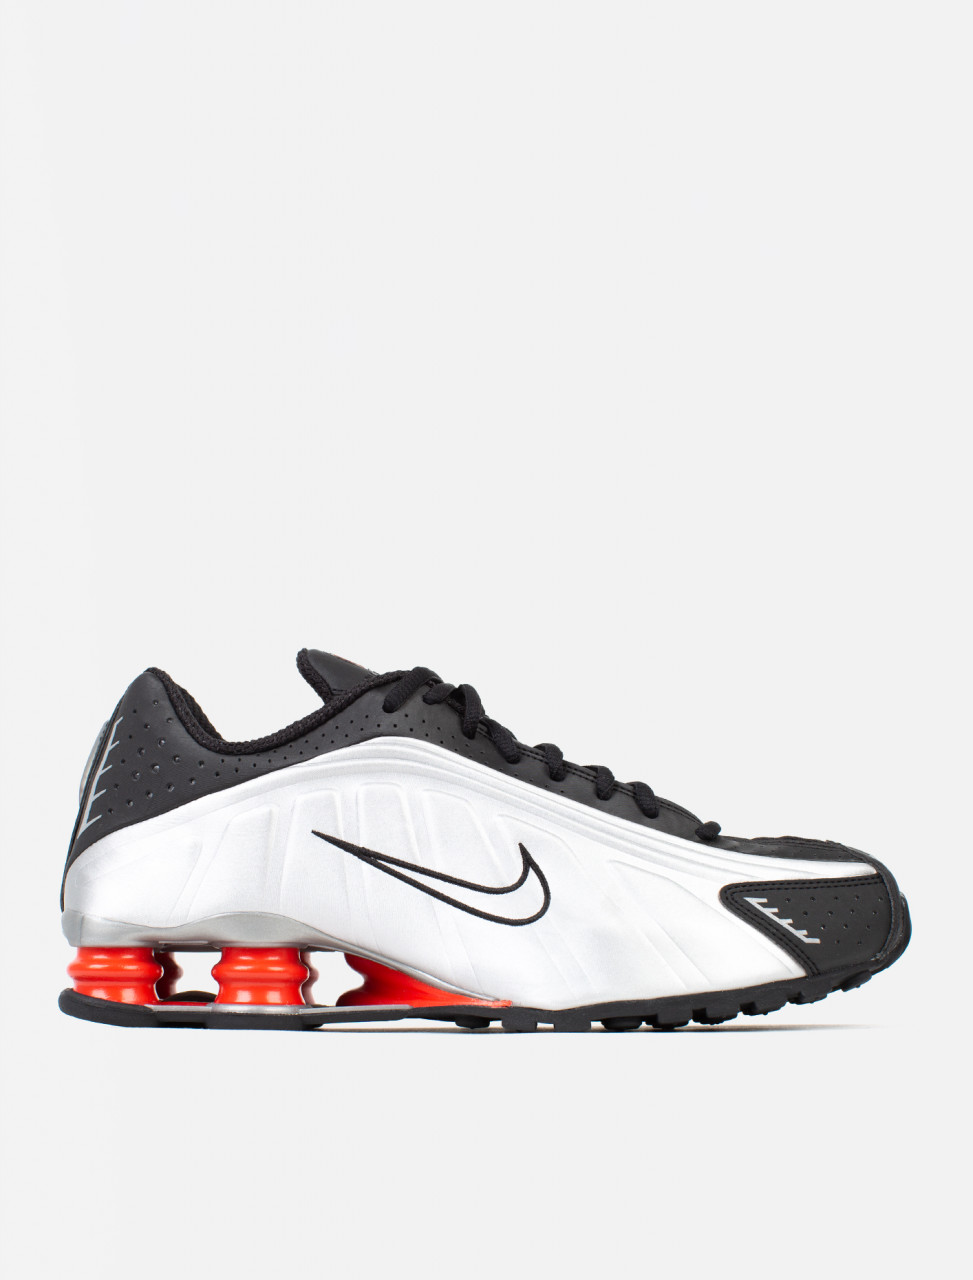 8687296bed430 Nike Nike Shox R4 Sneaker | Voo Store Berlin | Worldwide Shipping;